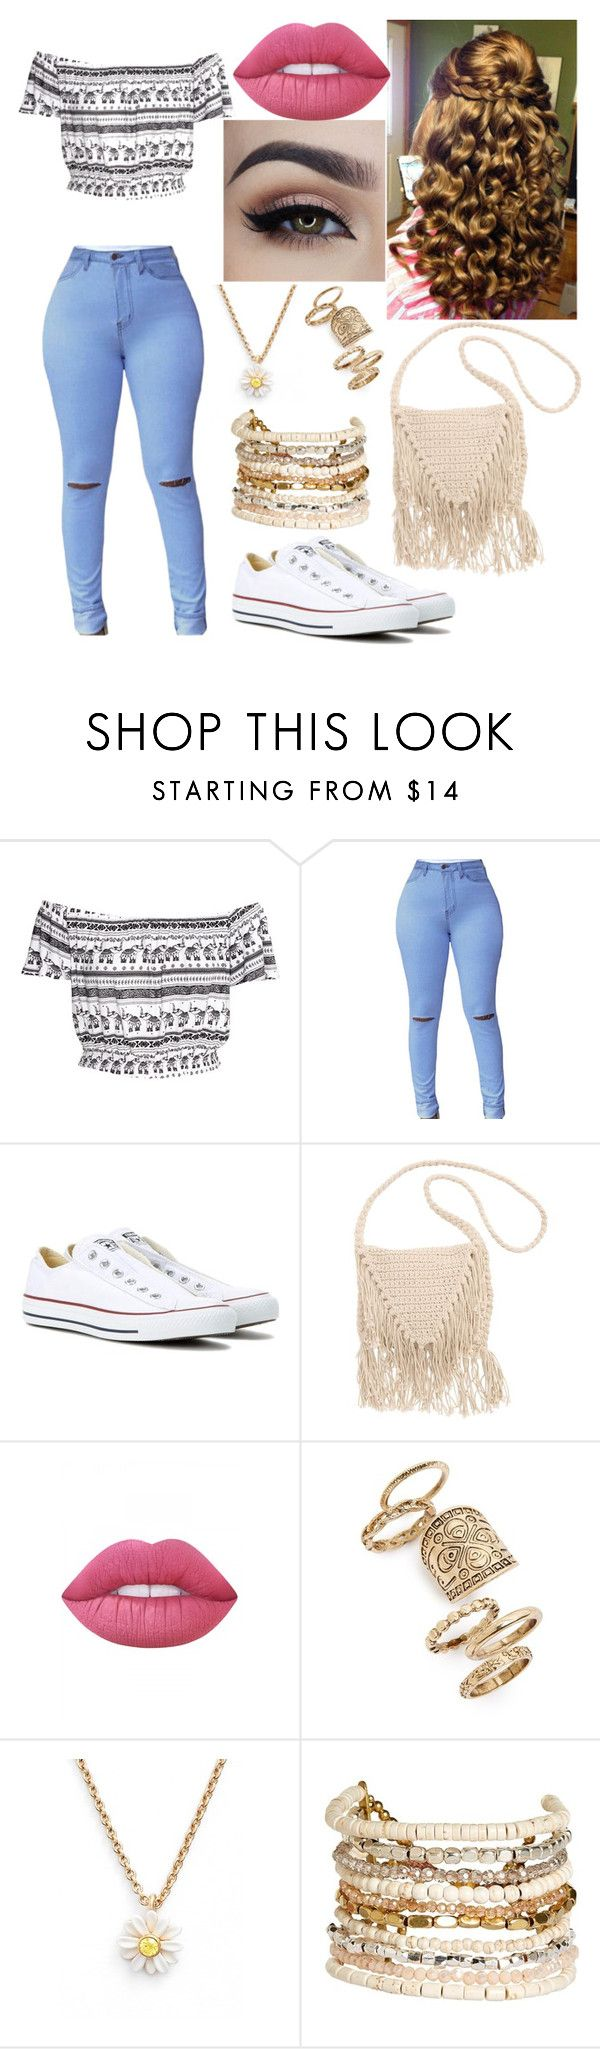 """""""Untitled #211"""" by mama-seokjin92 ❤ liked on Polyvore featuring Converse, Billabong, Lime Crime, Topshop, Kate Spade and Panacea"""